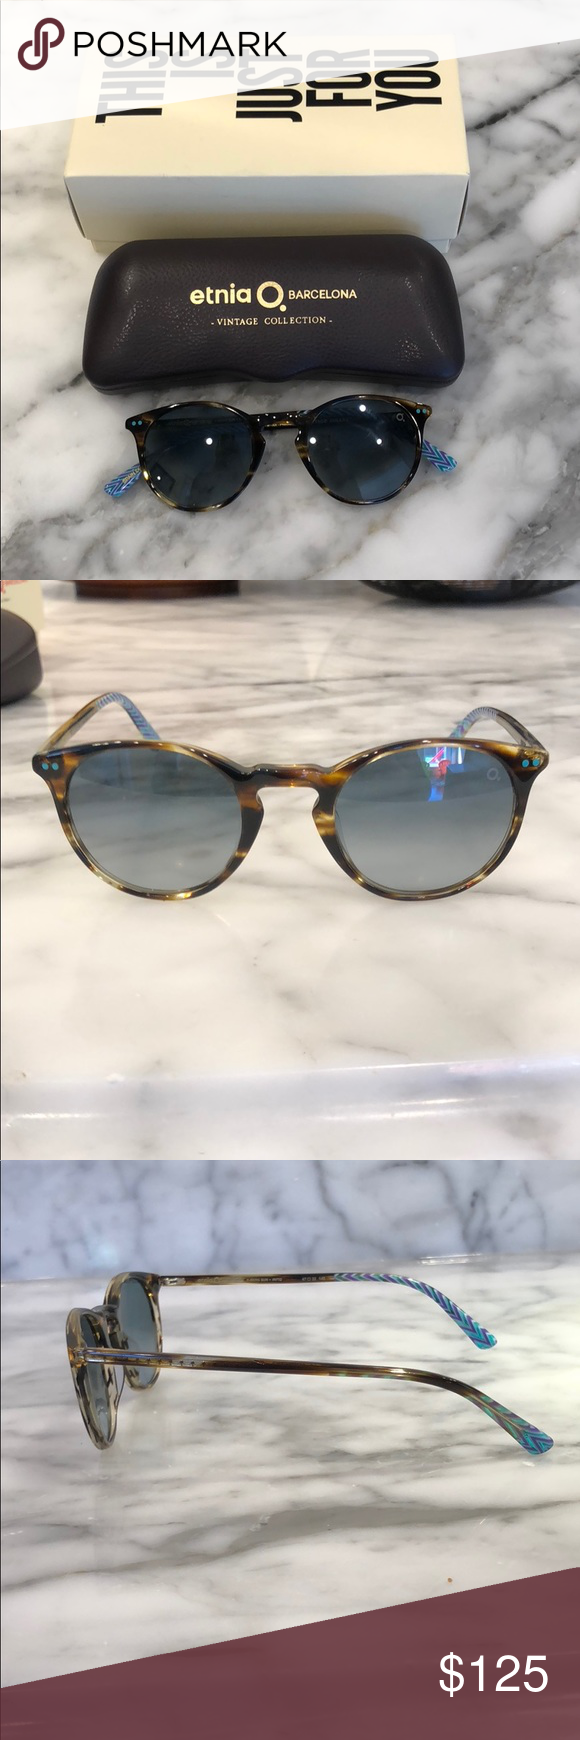 1e4f12ac28 Etnia Barcelona Vintage Sunglasses Brand new Model Vintage Collection x-berg  HVTQ 47mm Made with photochromic lenses Includes sunglasses